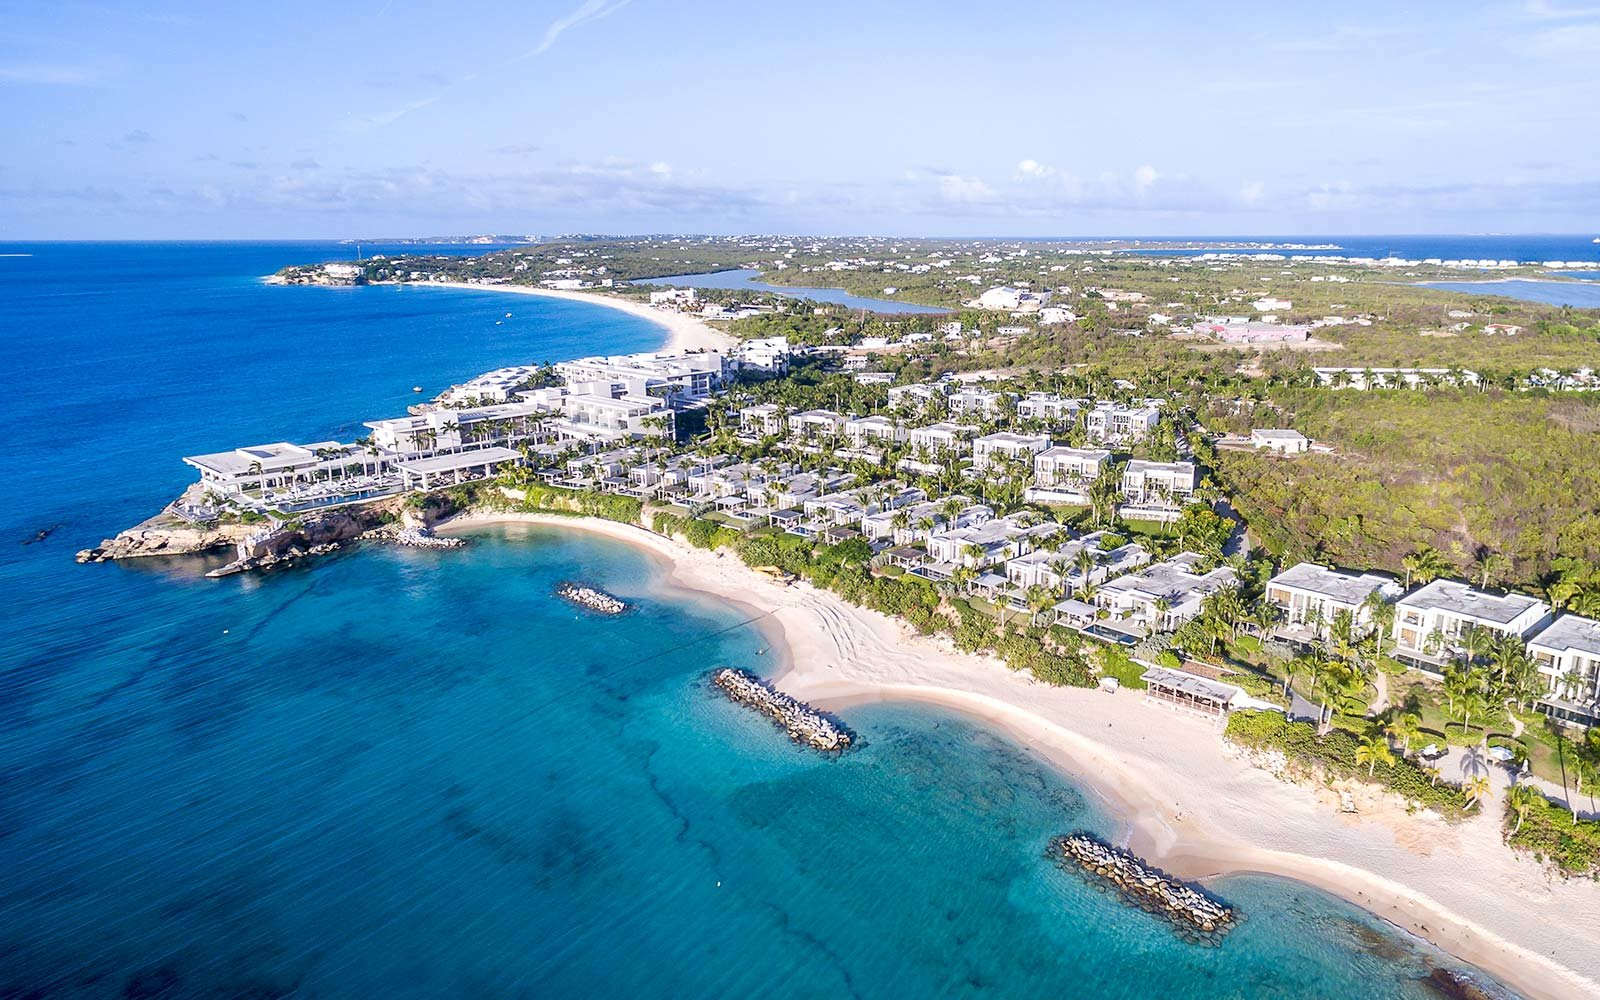 The Top 15 Islands in the Caribbean, Bermuda, and the Bahamas